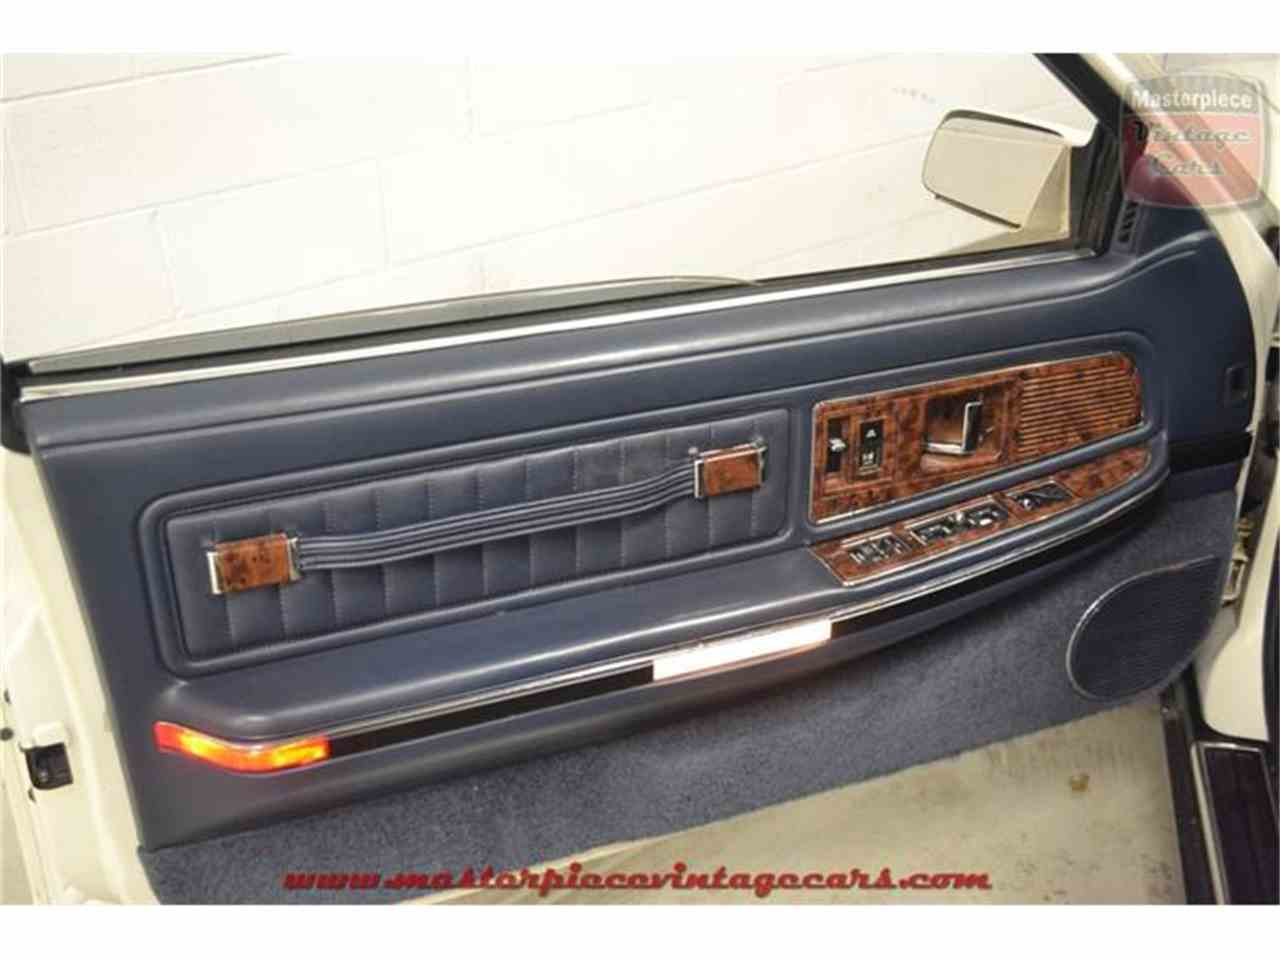 Large Picture of 1990 Buick Riviera located in Whiteland Indiana - $5,950.00 - IRZC